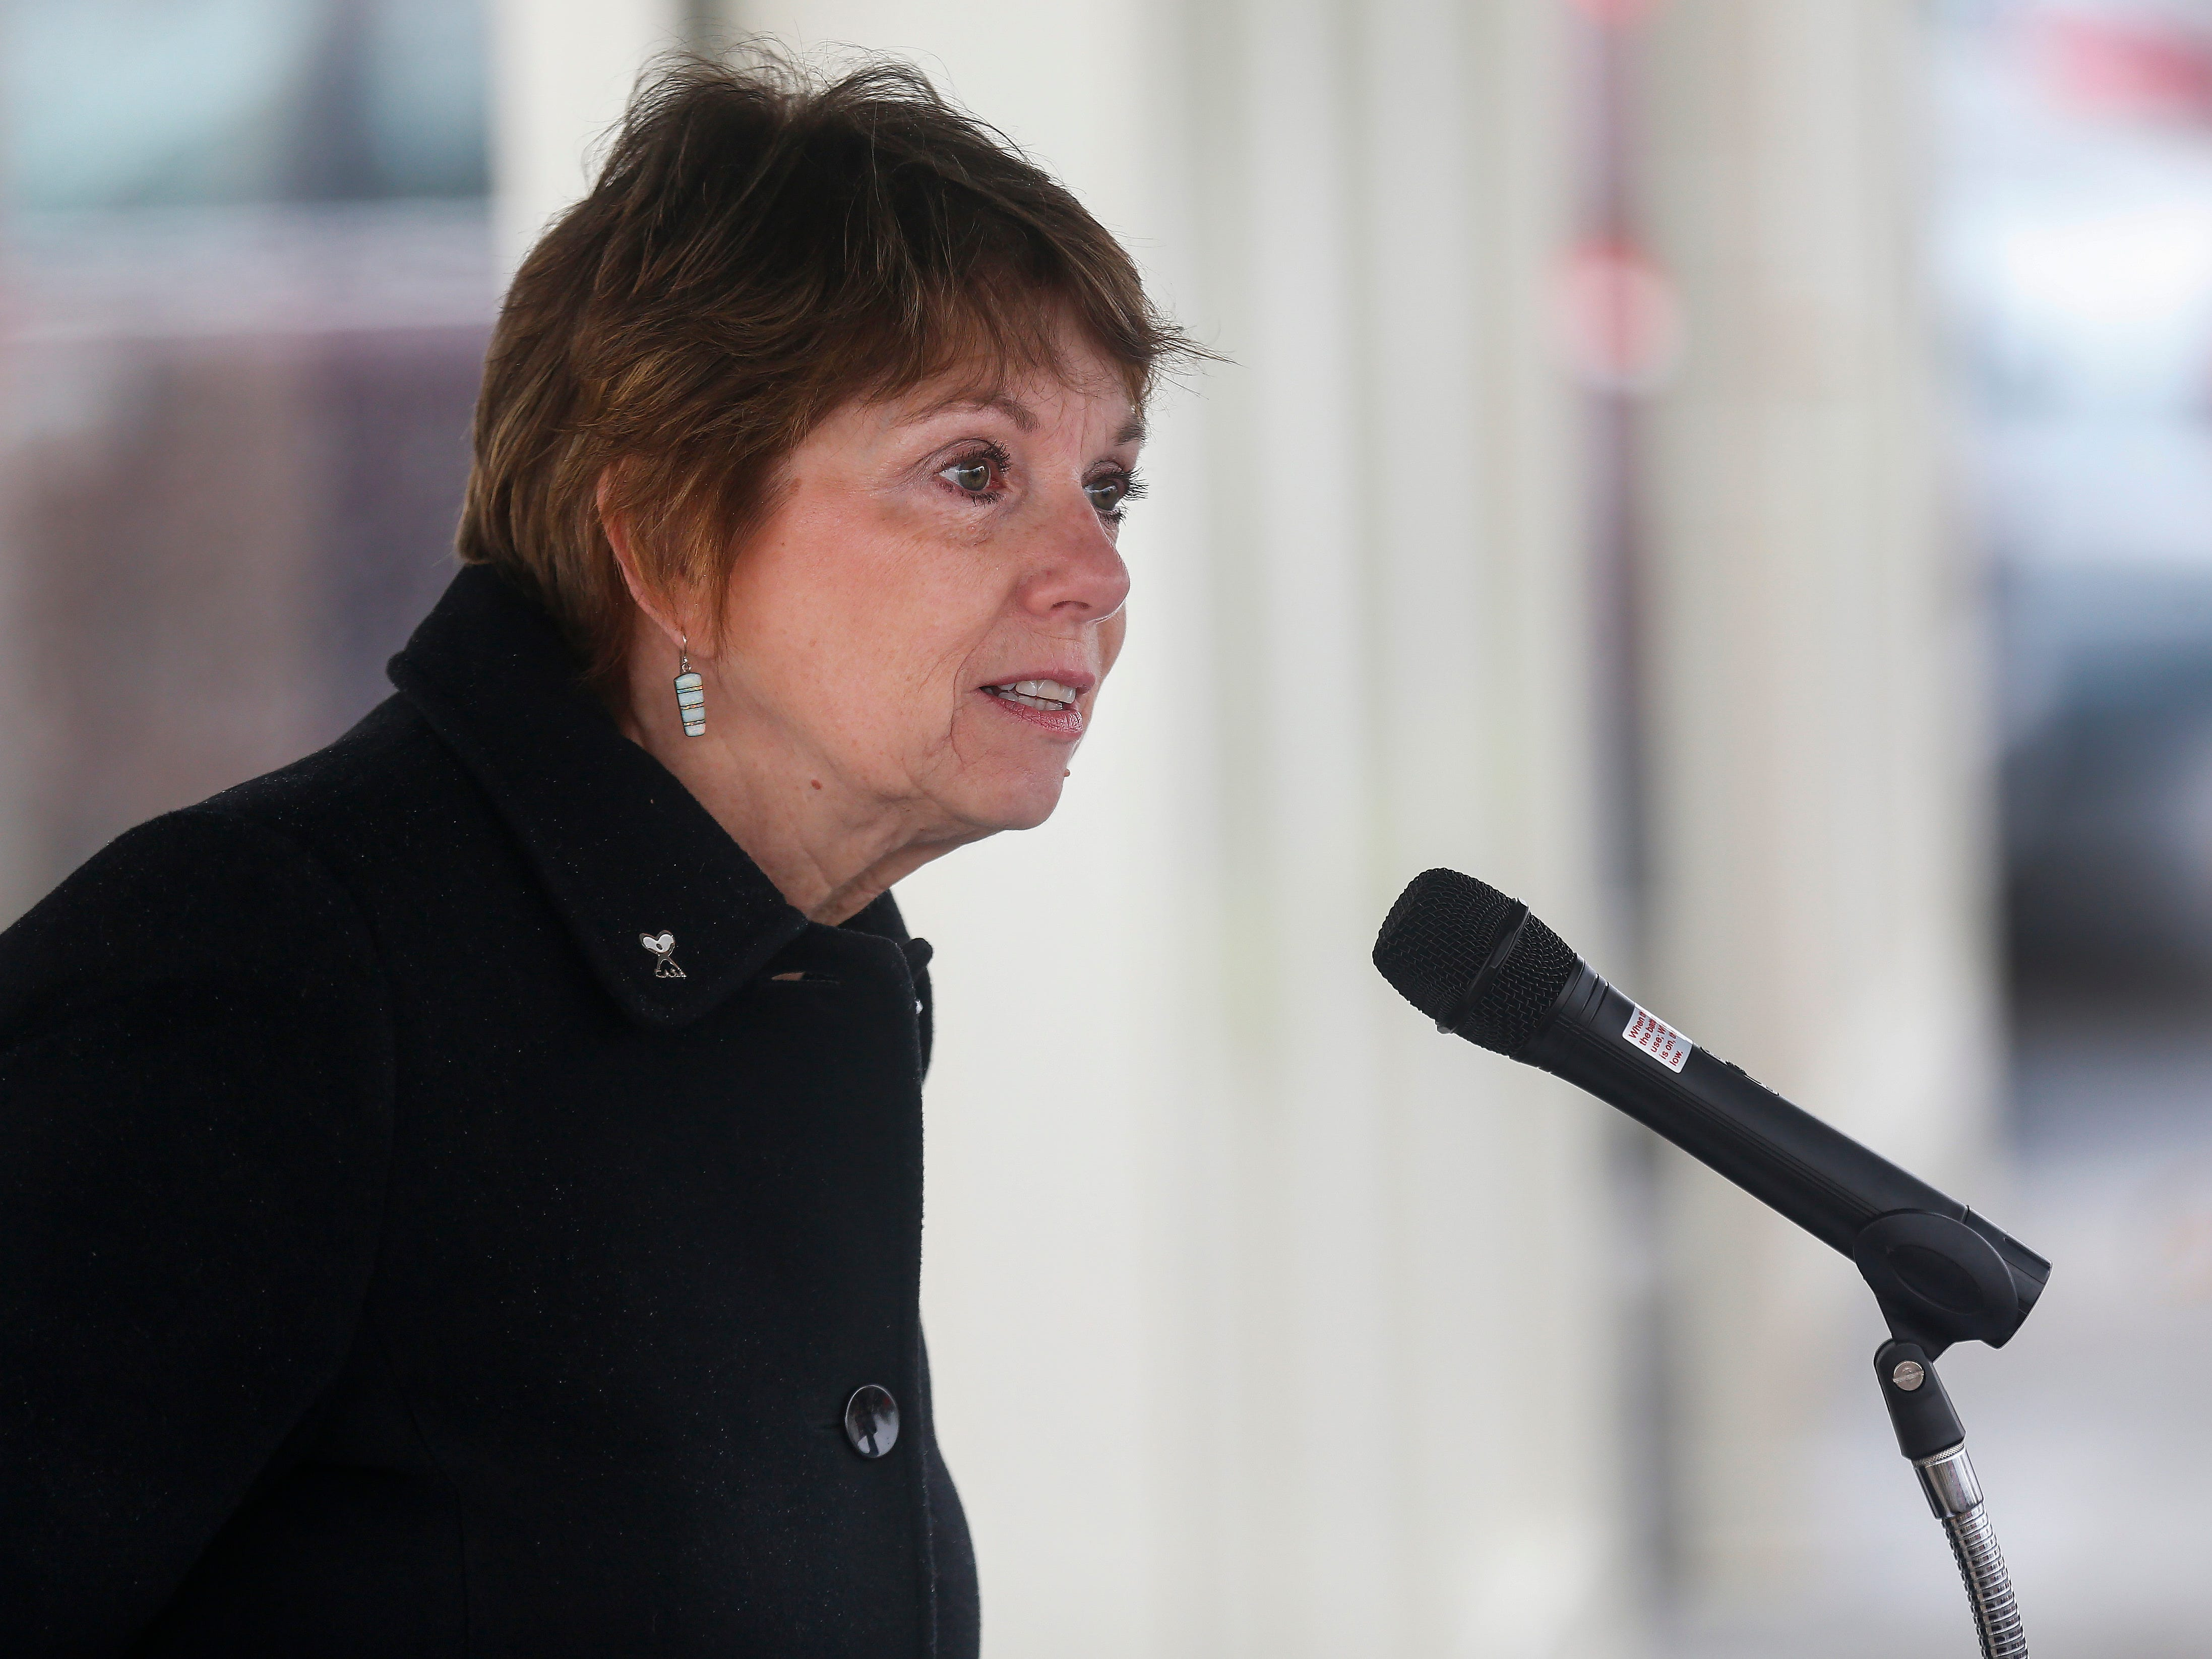 Springfield Zone 1 Councilwoman Phyllis Ferguson speaks during the grand opening of the new Library Express West located at 3872 W. Chestnut Expressway in Orchard Plaza on Wednesday, Feb. 6, 2019.